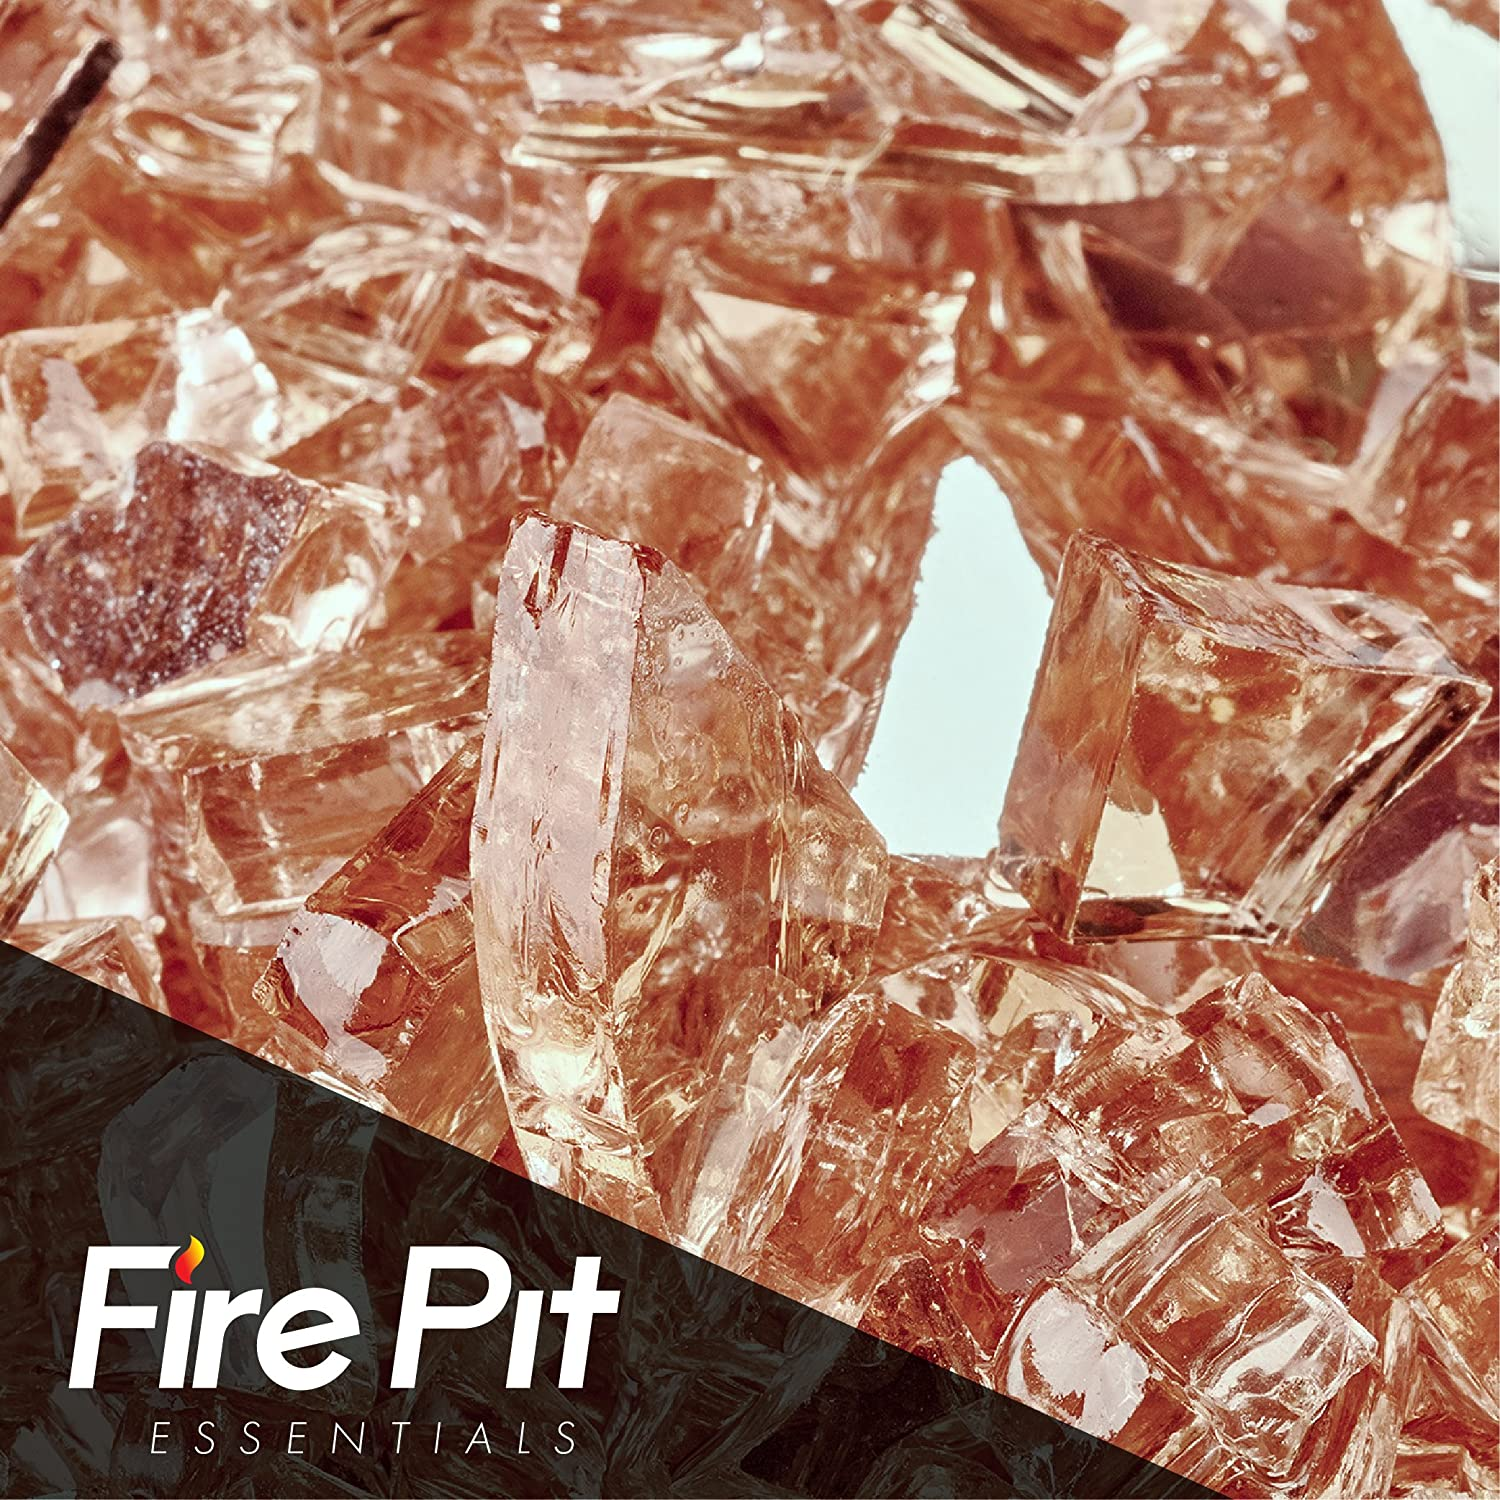 Champagne Reflective Fire Glass 1/4 Firepit Glass Premium 10 Pounds Great for Fire Pit Fireglass or Fireplace Glass Fire Pit Essentials